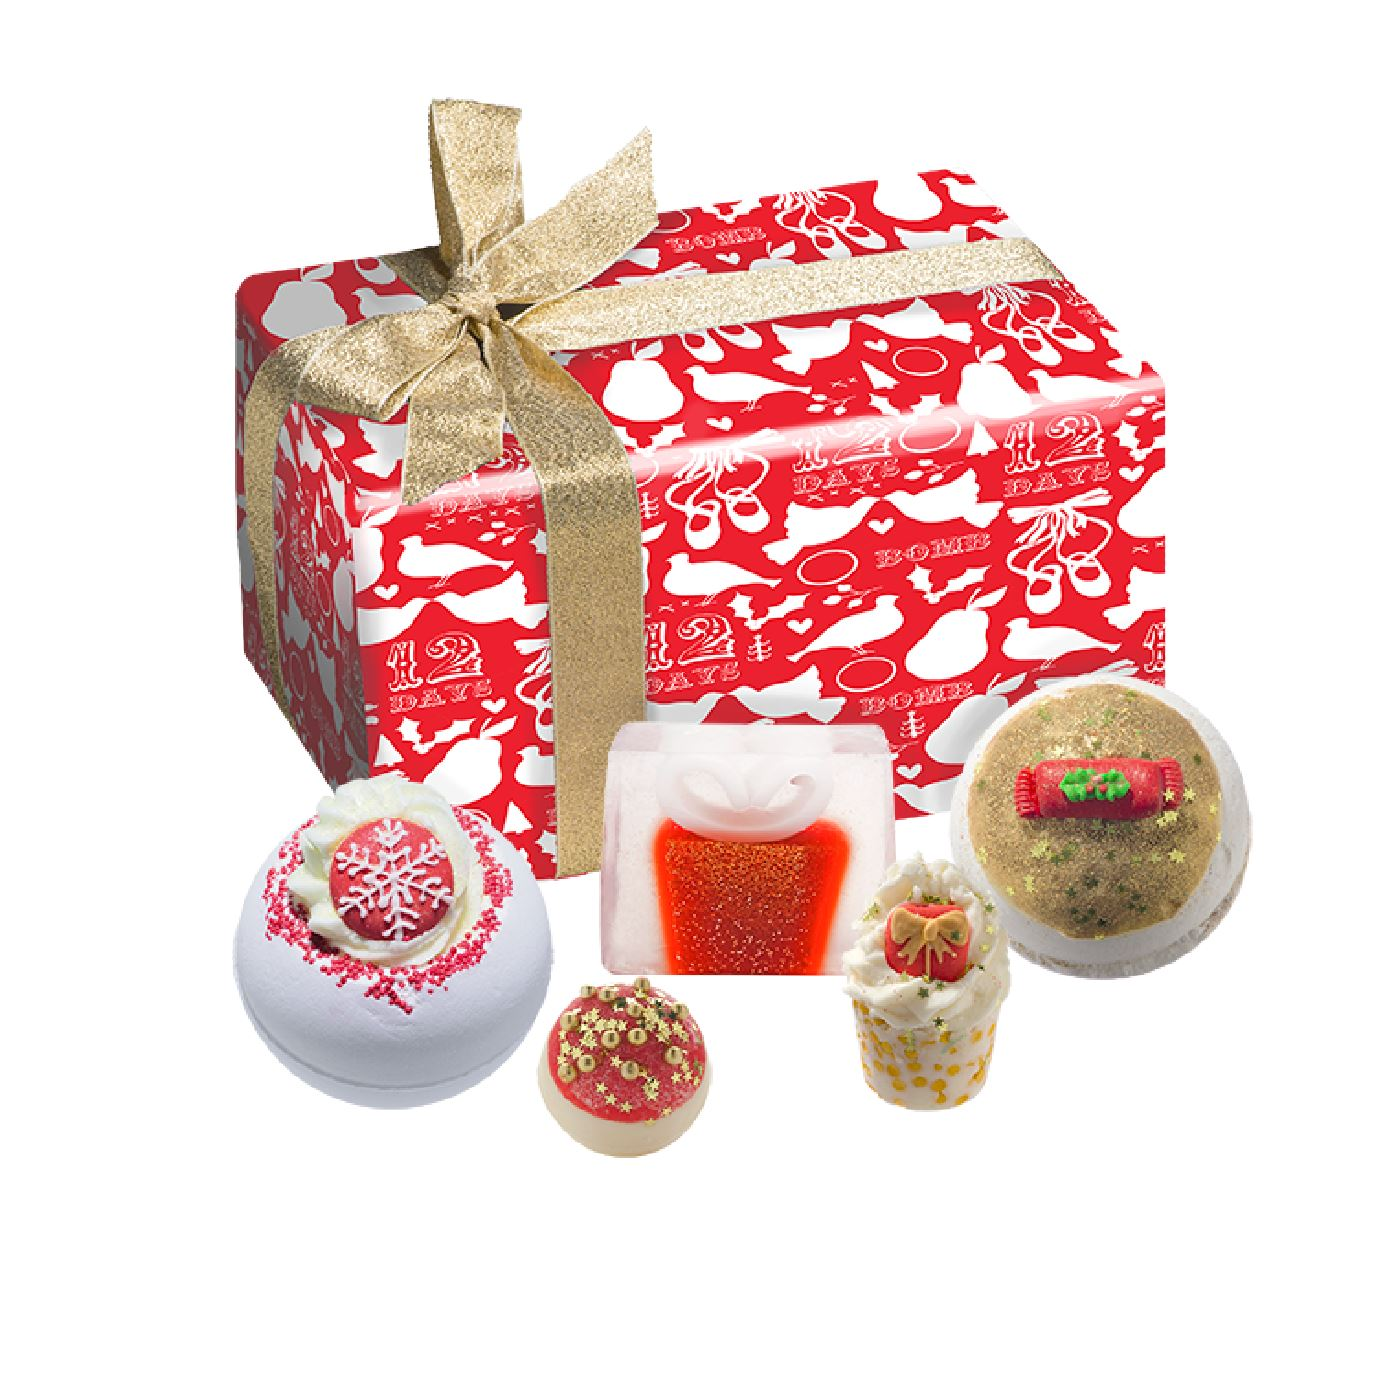 Bomb-Cosmetics-Luxury-Wrapped-Handmade-Natural-Soap-Christmas-Pamper-Gift-Set